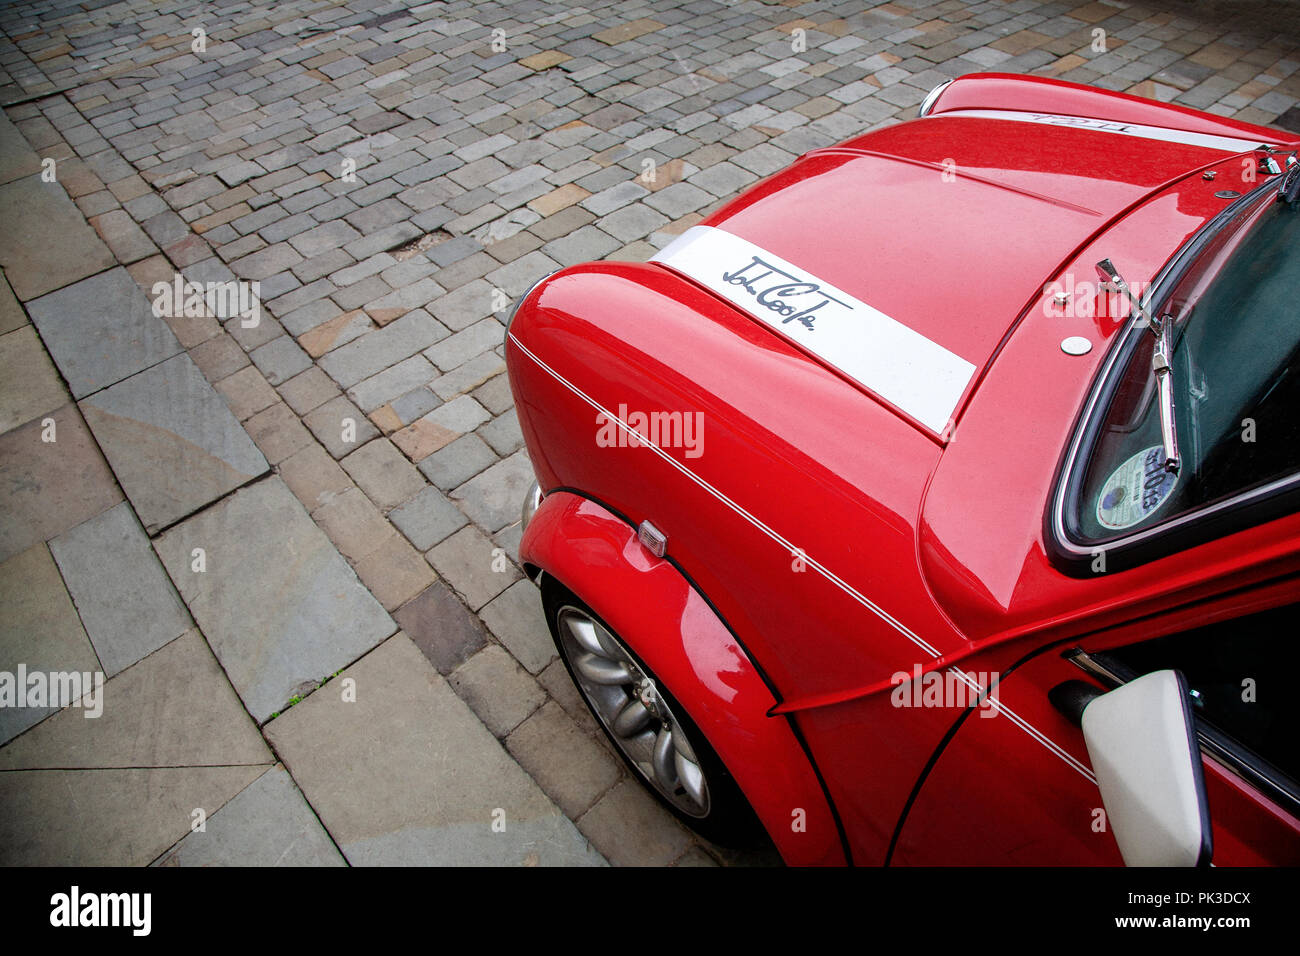 The John Cooper logo badge on the bonnet of a Red Mini Cooper, John Cooper version taken from high up looking down - Stock Image